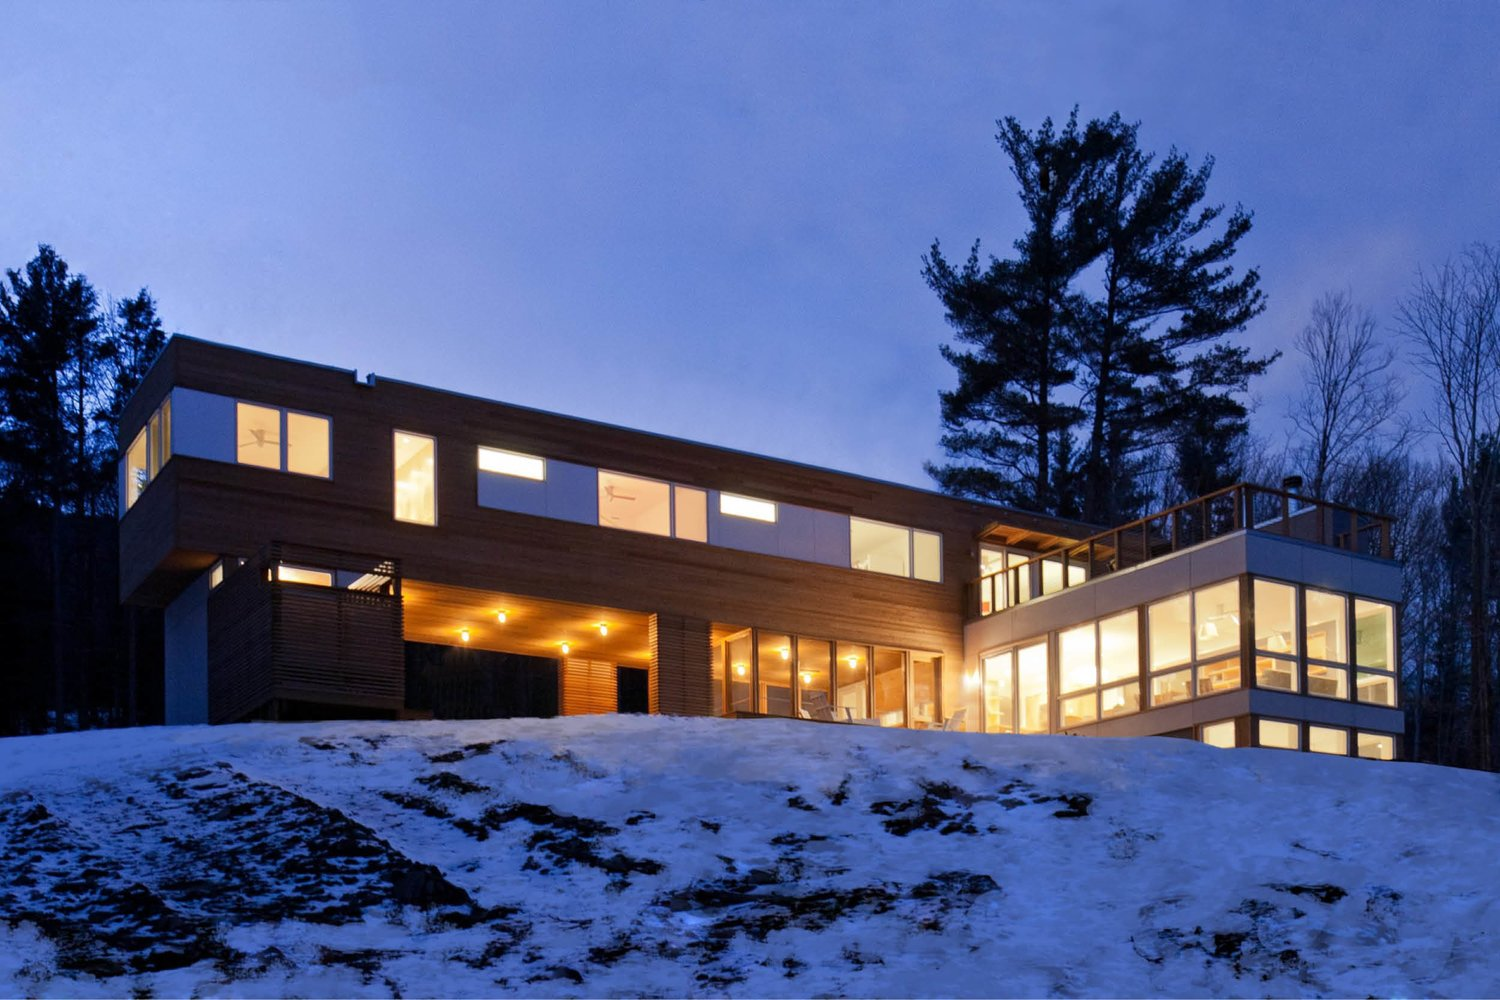 Exterior, Prefab Building Type, and Wood Siding Material Project Name: Olive Bridge House  Photo 12 of 20 in 19 Modern Prefab Companies Perfect for Mountain Living